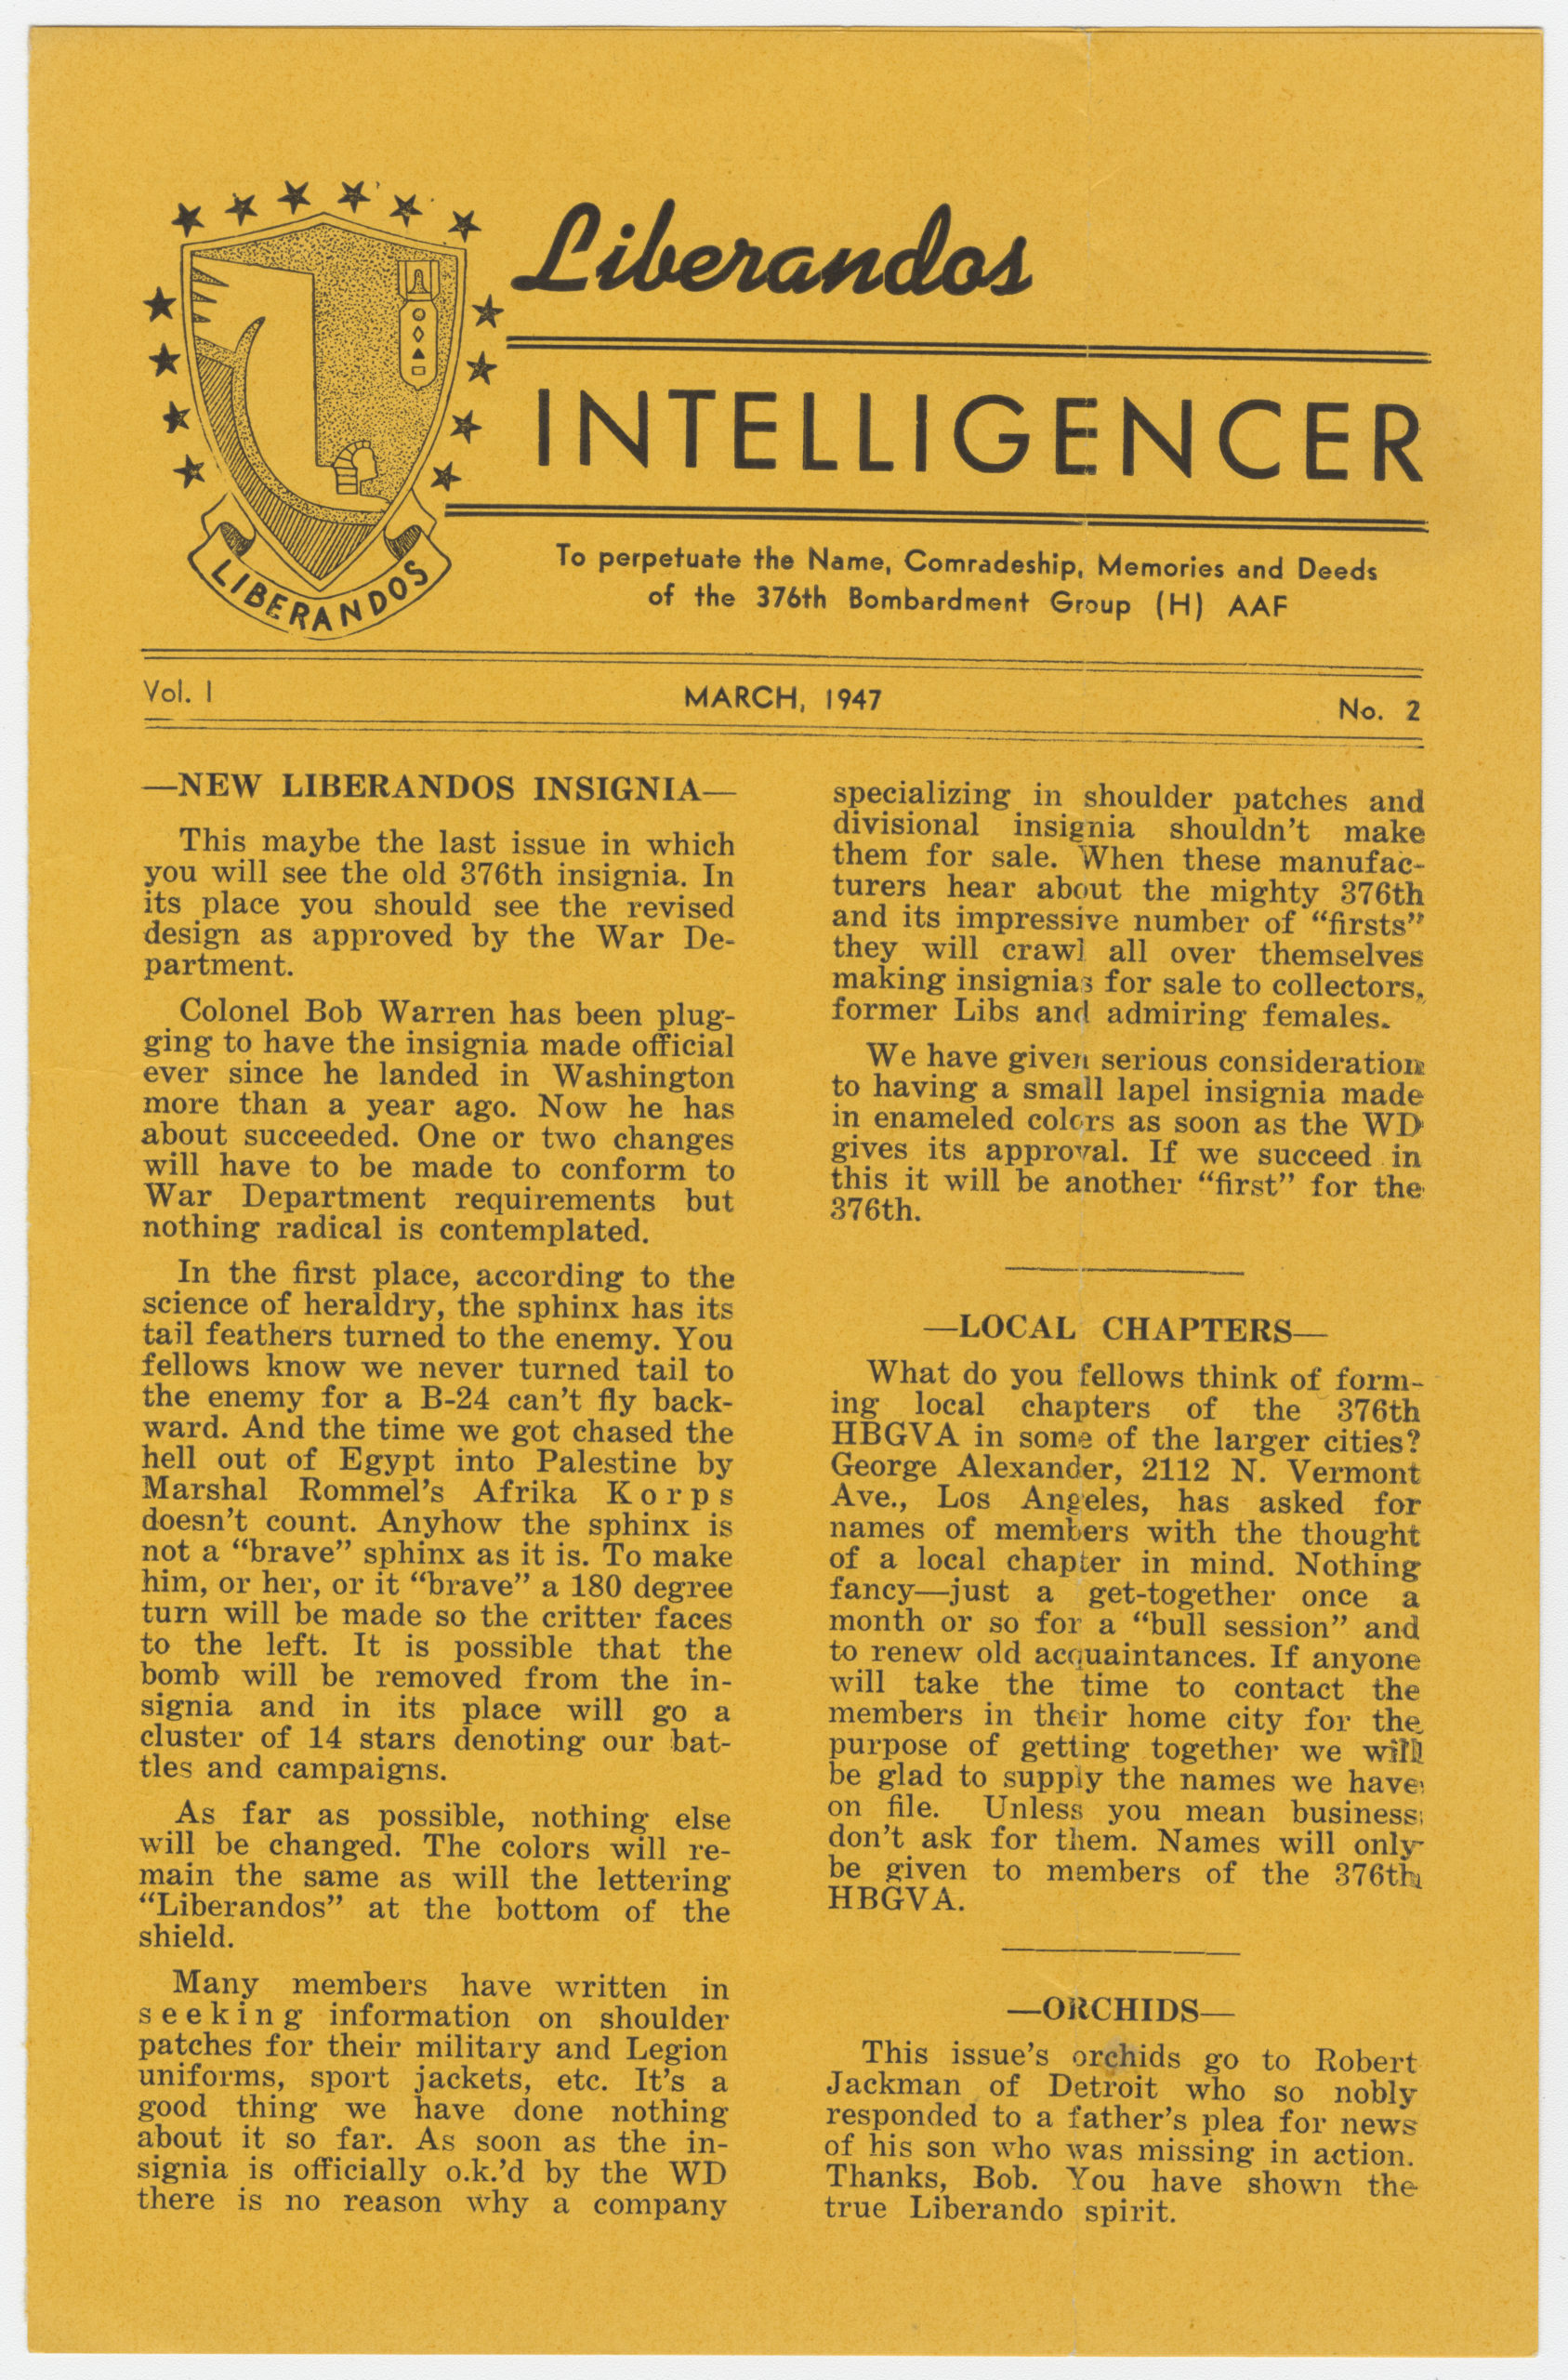 """Front page of """"Liberandos Intelligencer"""" newsletter, March 1947. e_376th_0032"""